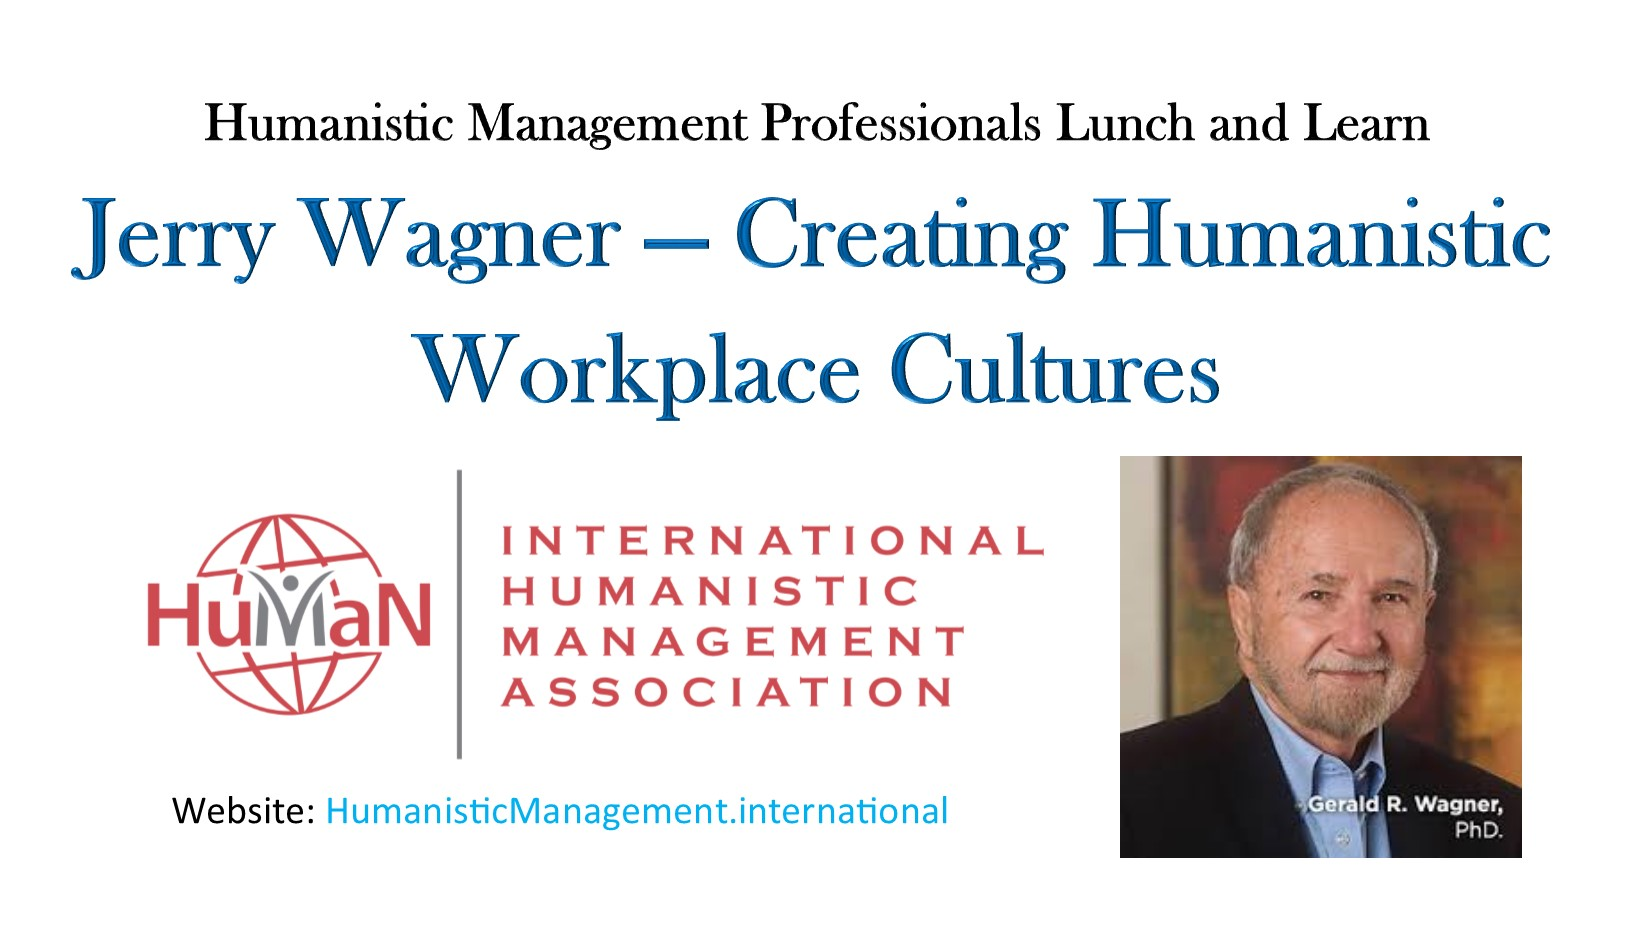 Creating Humanistic Workplace Cultures